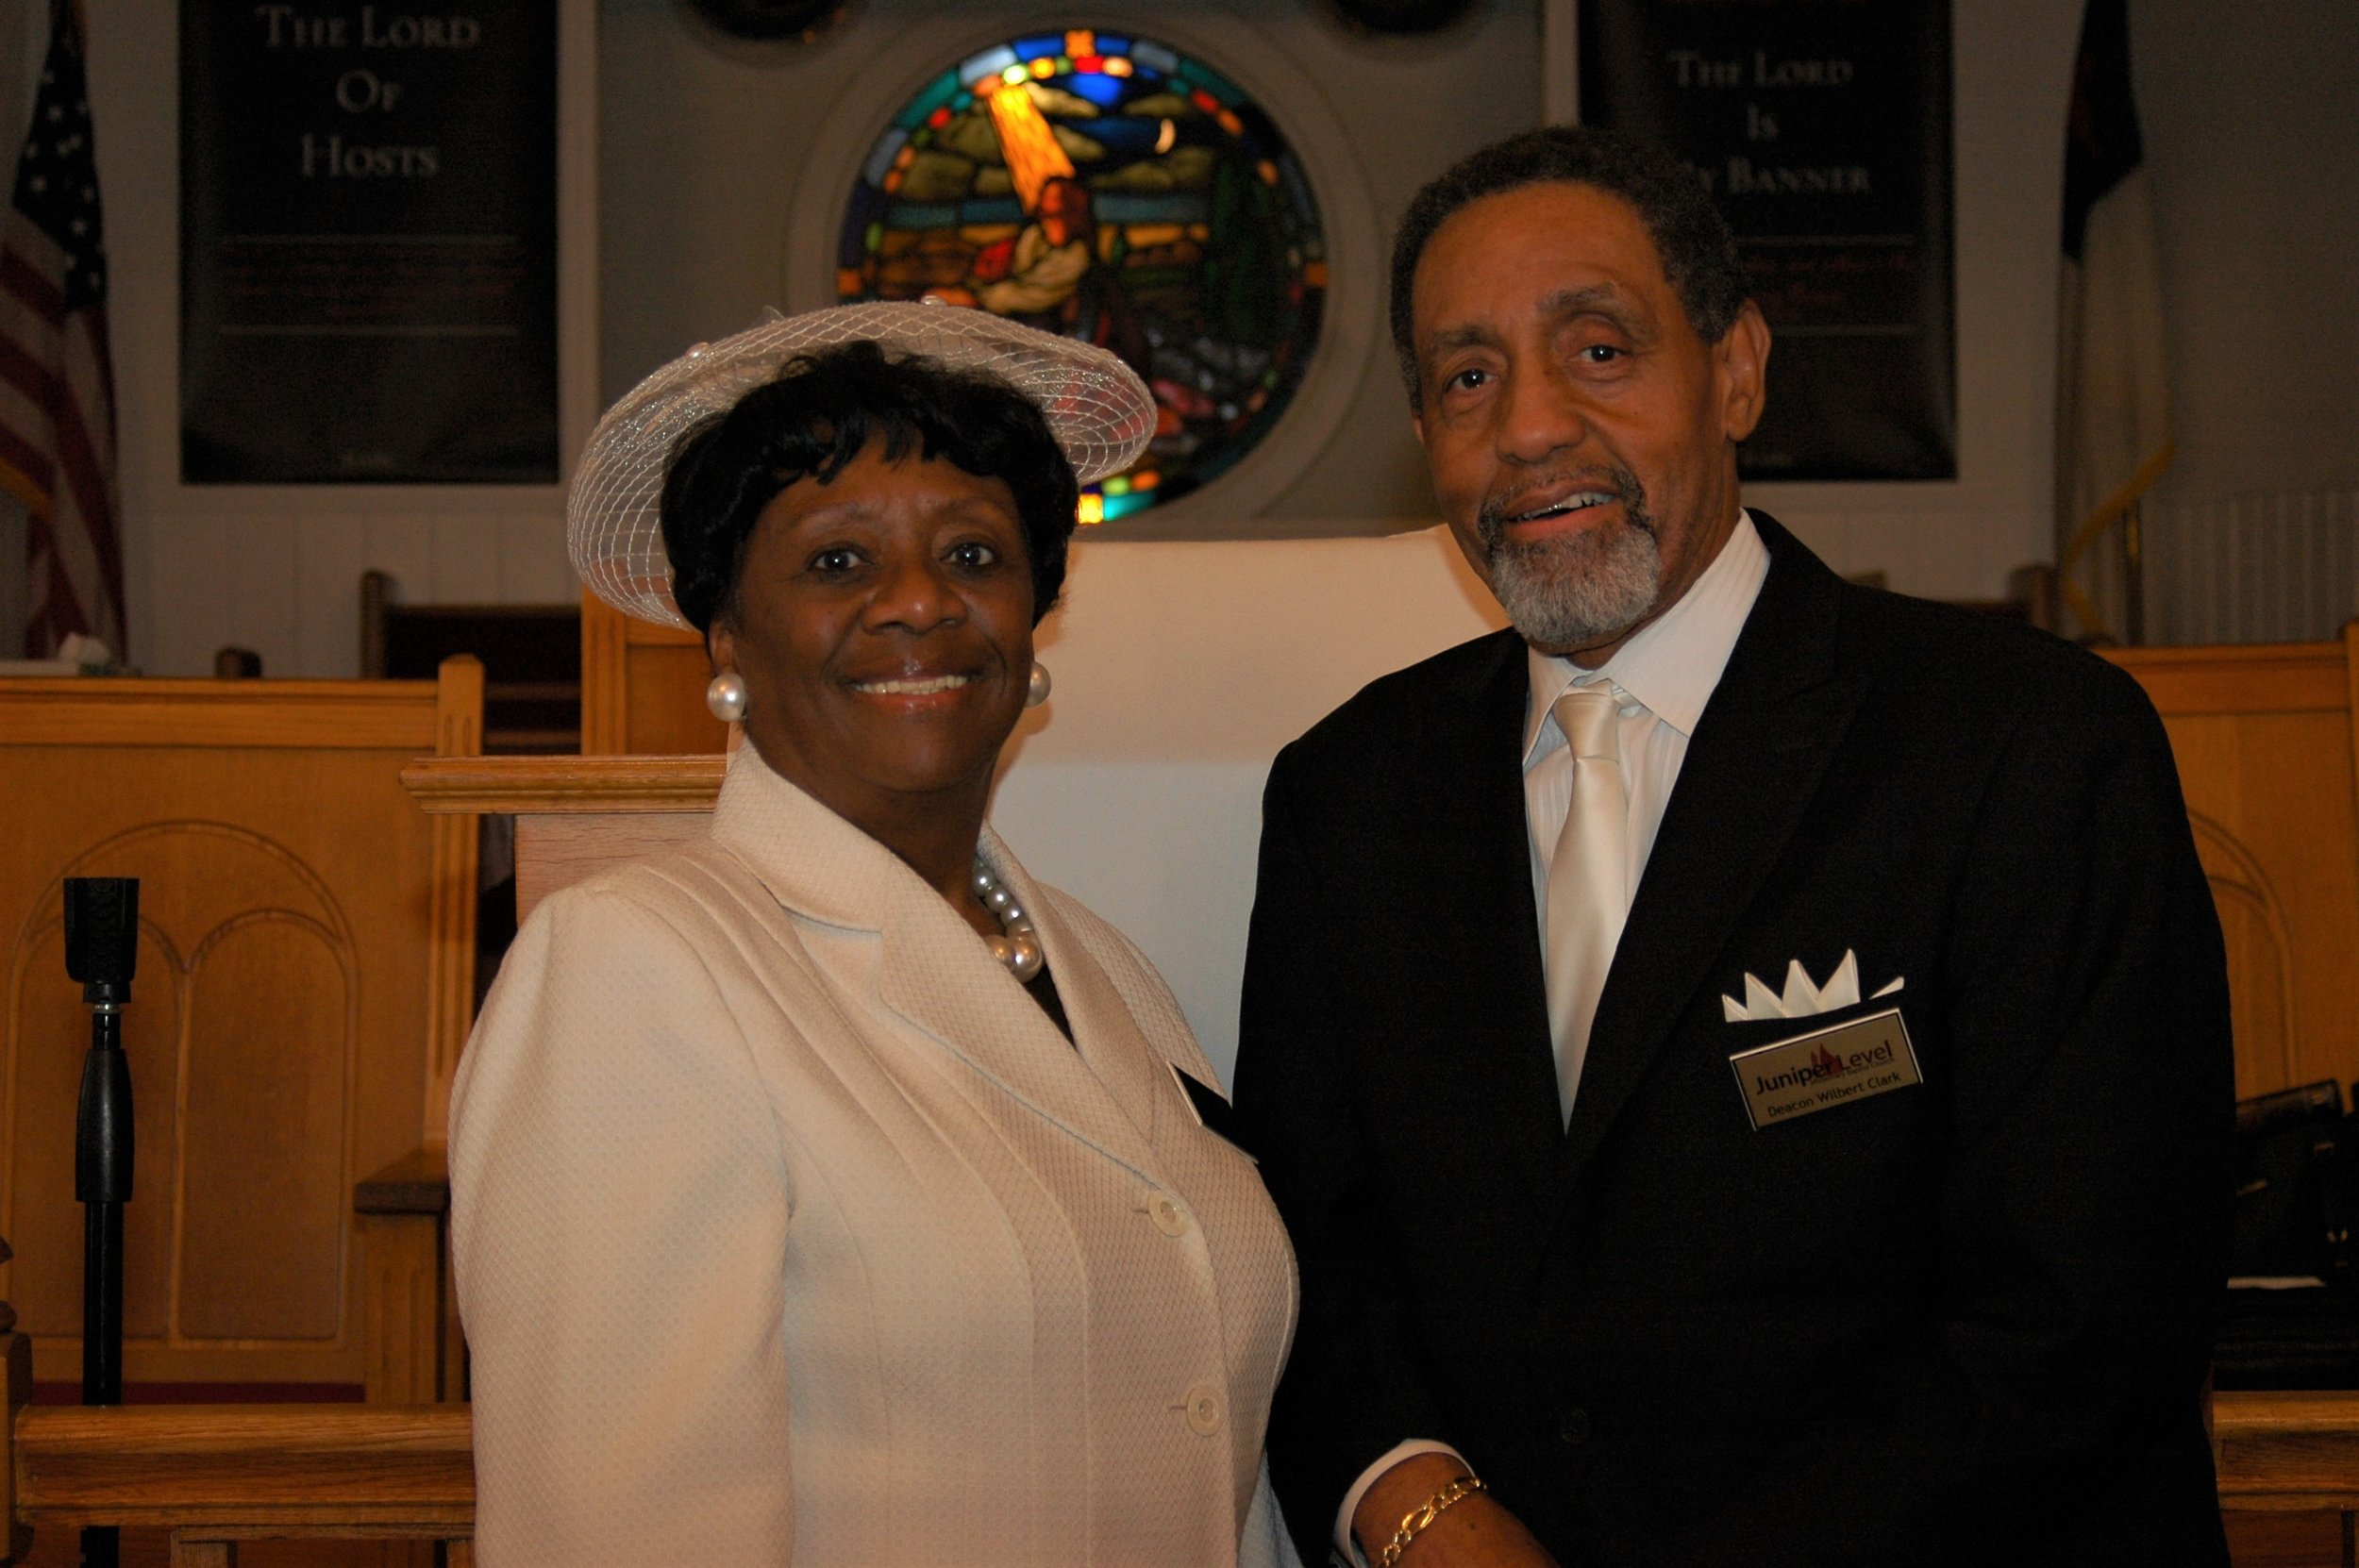 Deacon and Deaconess Wilbert and Charlotte Clark